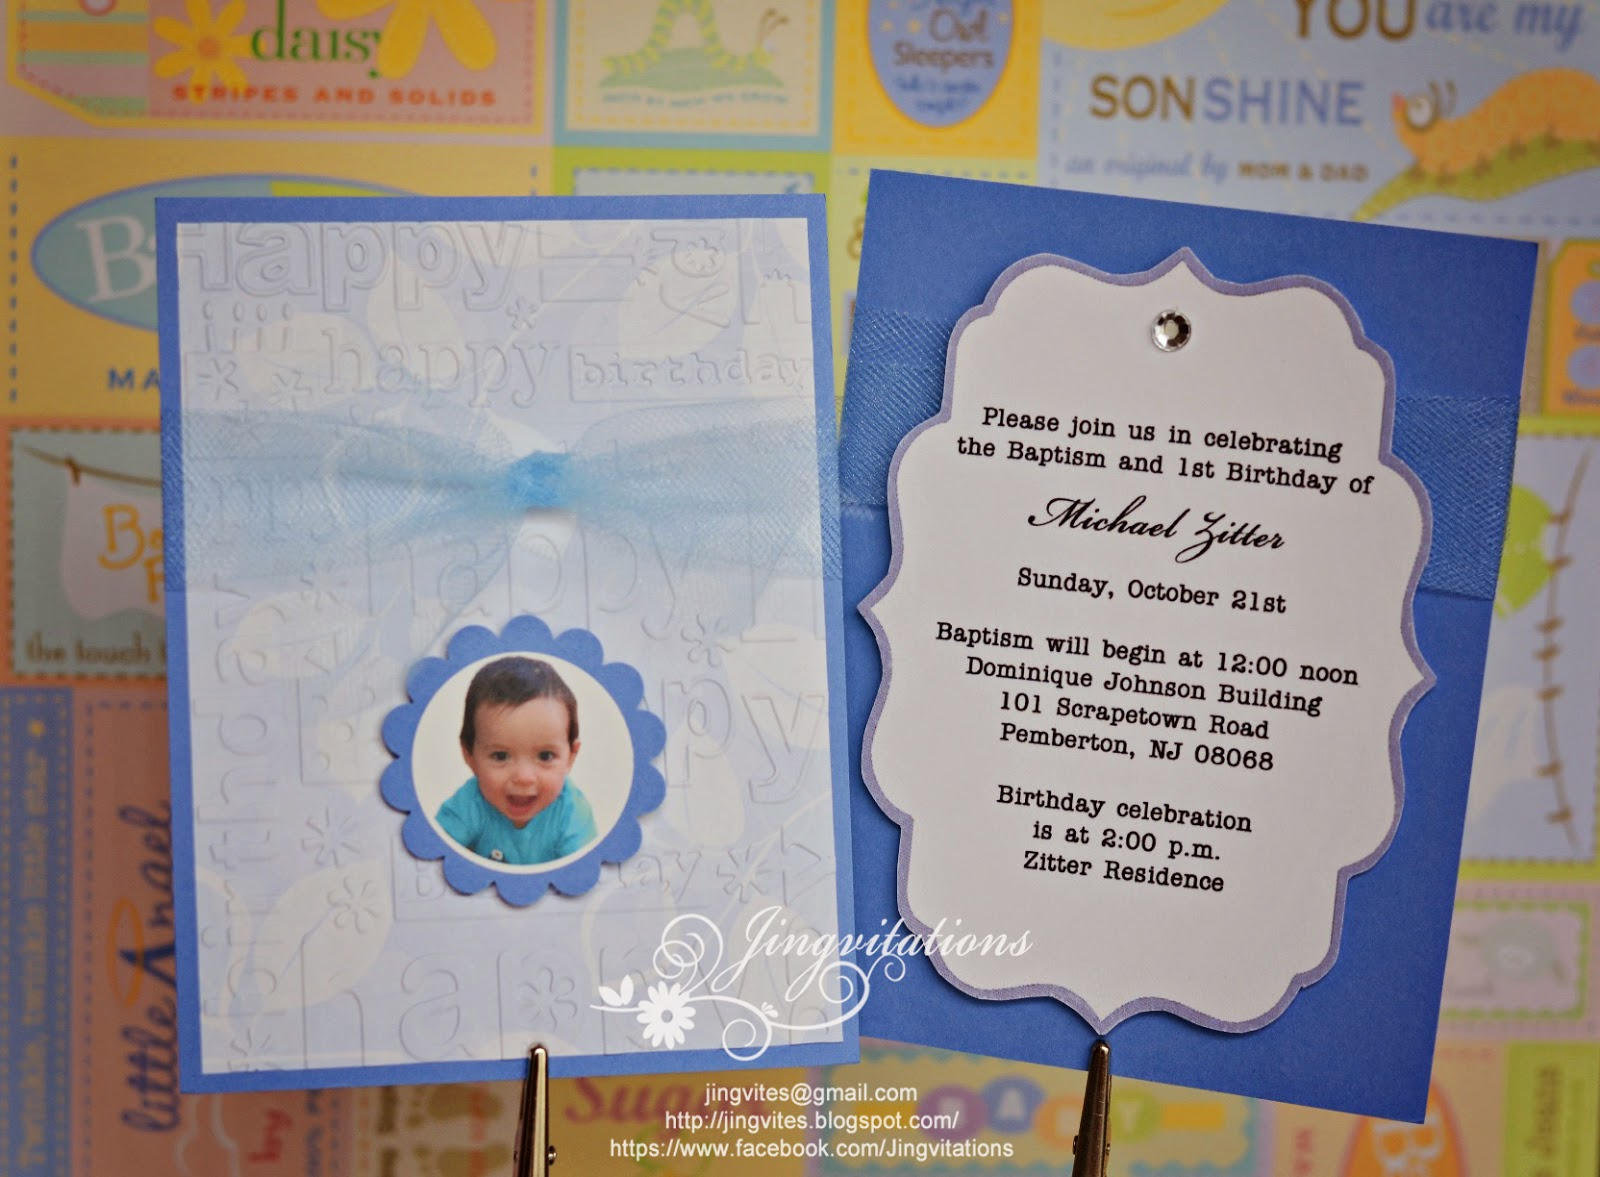 Jingvitations baptism and first birthday invitations baptism invitations first birthday invitations stopboris Gallery